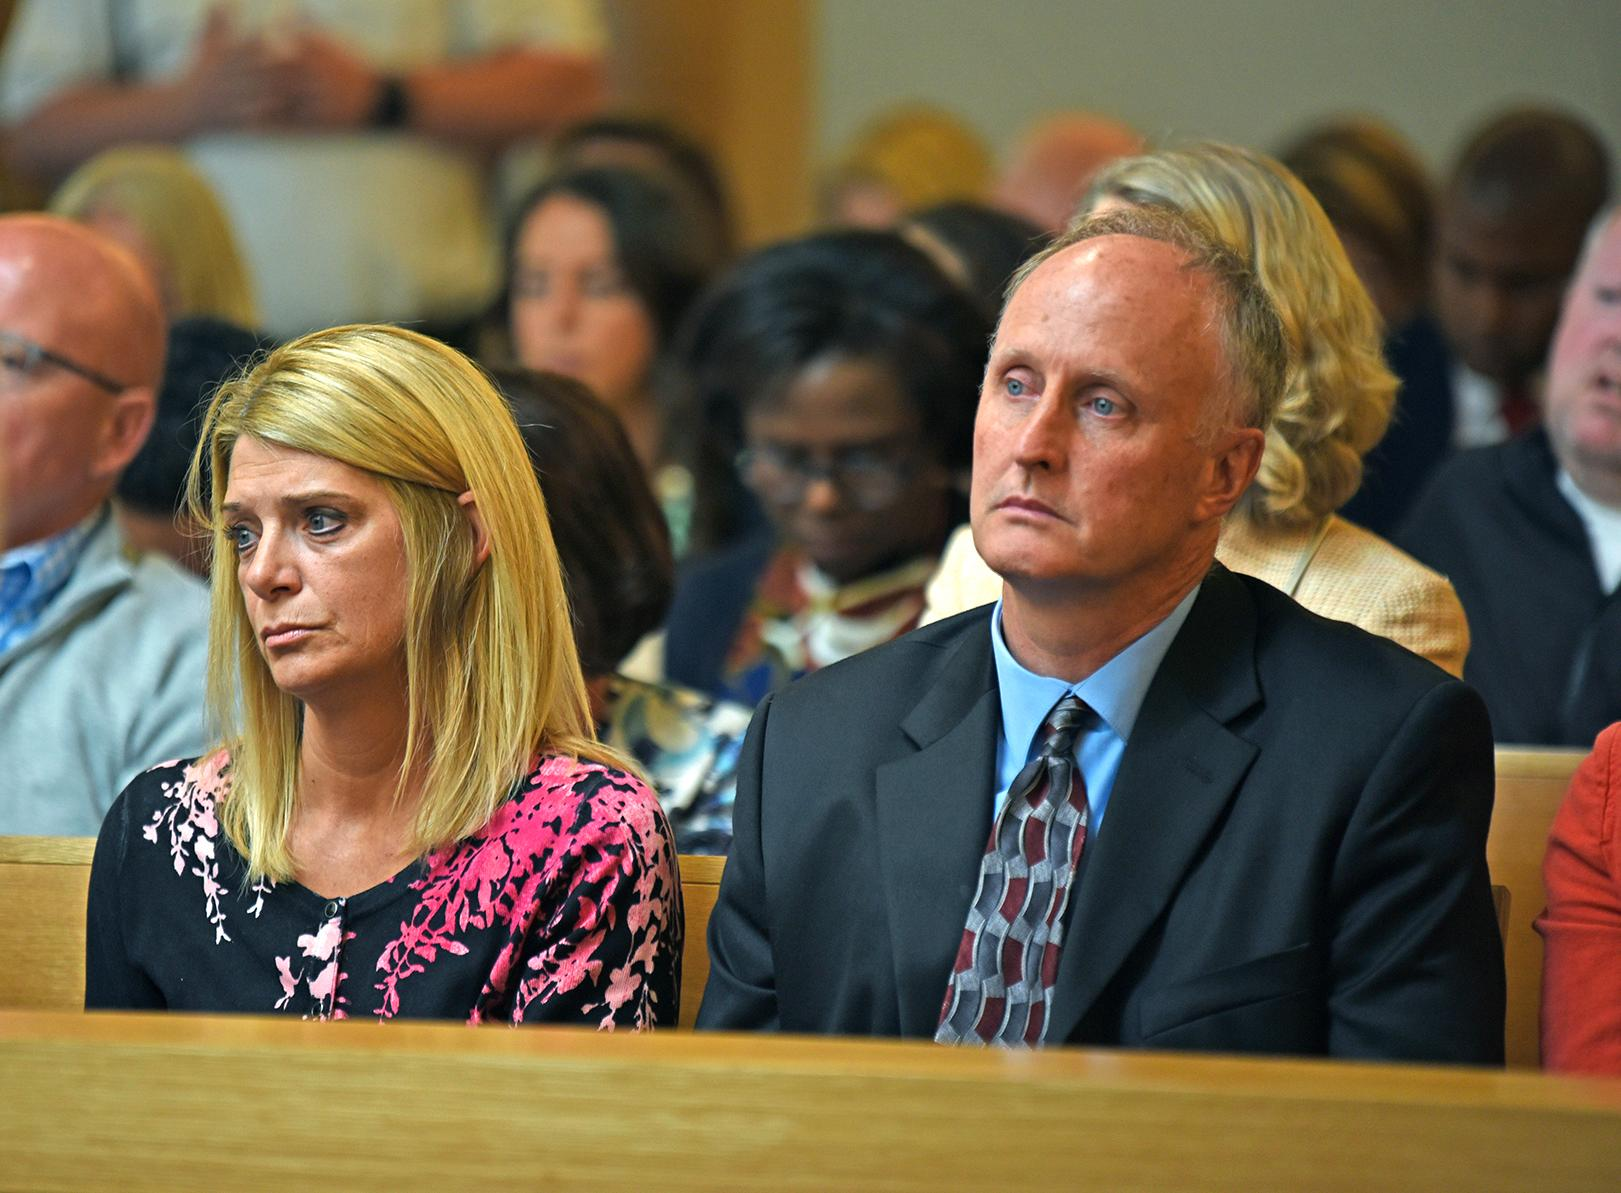 Michelle Carter's parents listen to Judge Lawrence Moniz before he announces his verdict on Friday, June 6, 2017, in Bristol Juvenile Court in Taunton, Mass. Michell Carter was found guilty of involuntary manslaughter in the suicide of Conrad Roy III. (Glenn C.  Silva/Fairhaven Neighborhood News, Pool)